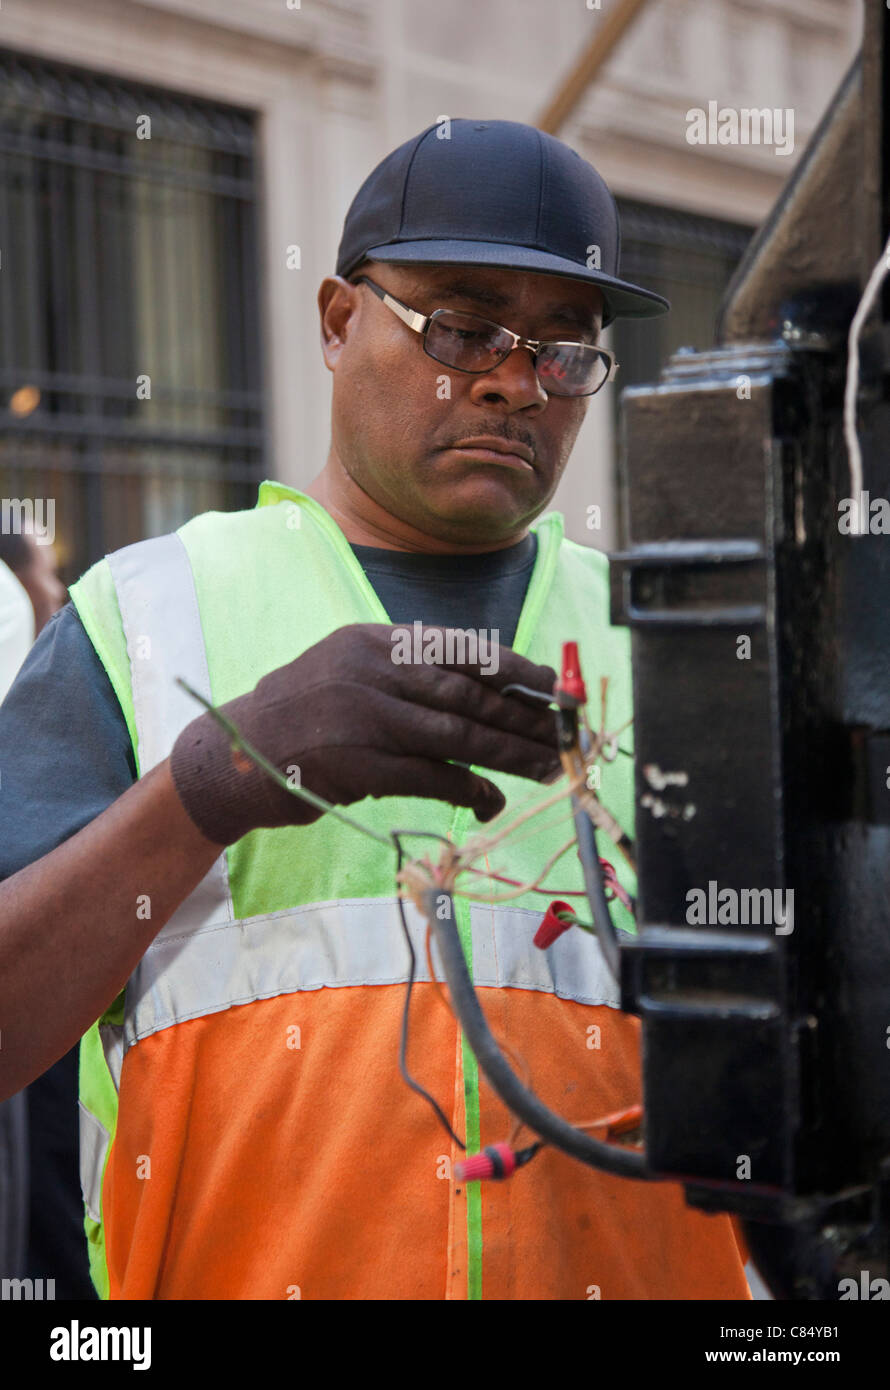 Chicago, Illinois - A worker repairs a traffic light in Chicago's financial district. - Stock Image